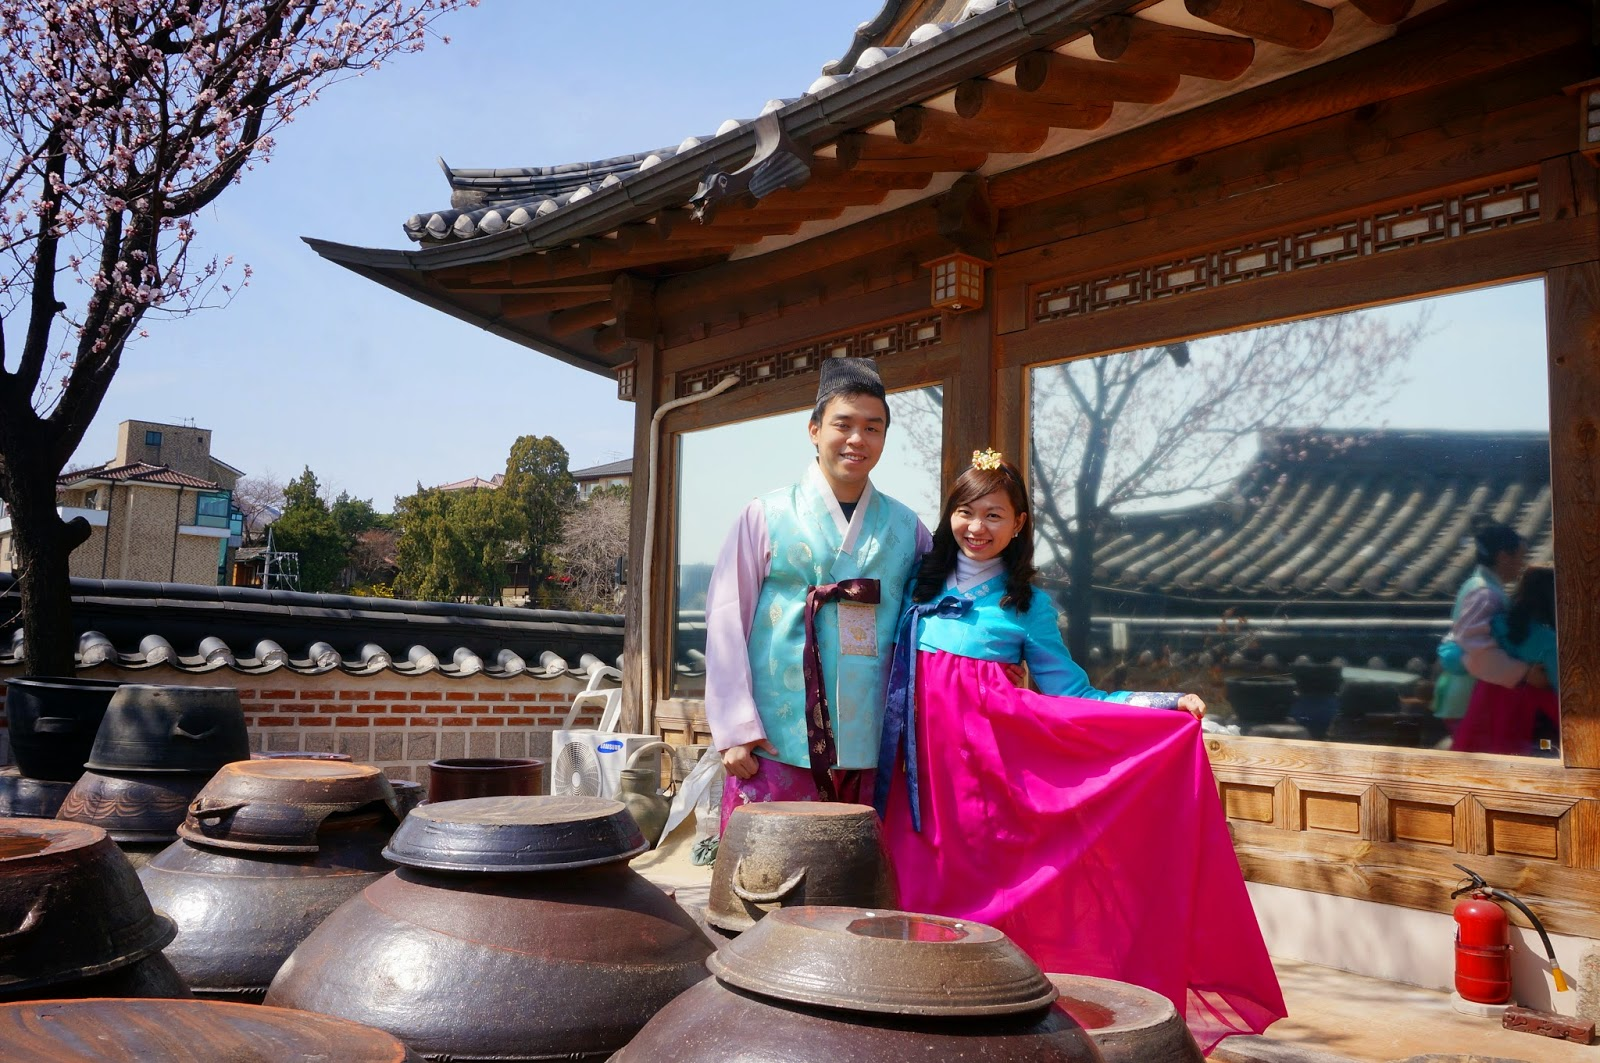 Walk With Cham Things To Do For Couples In Seoul South Korea